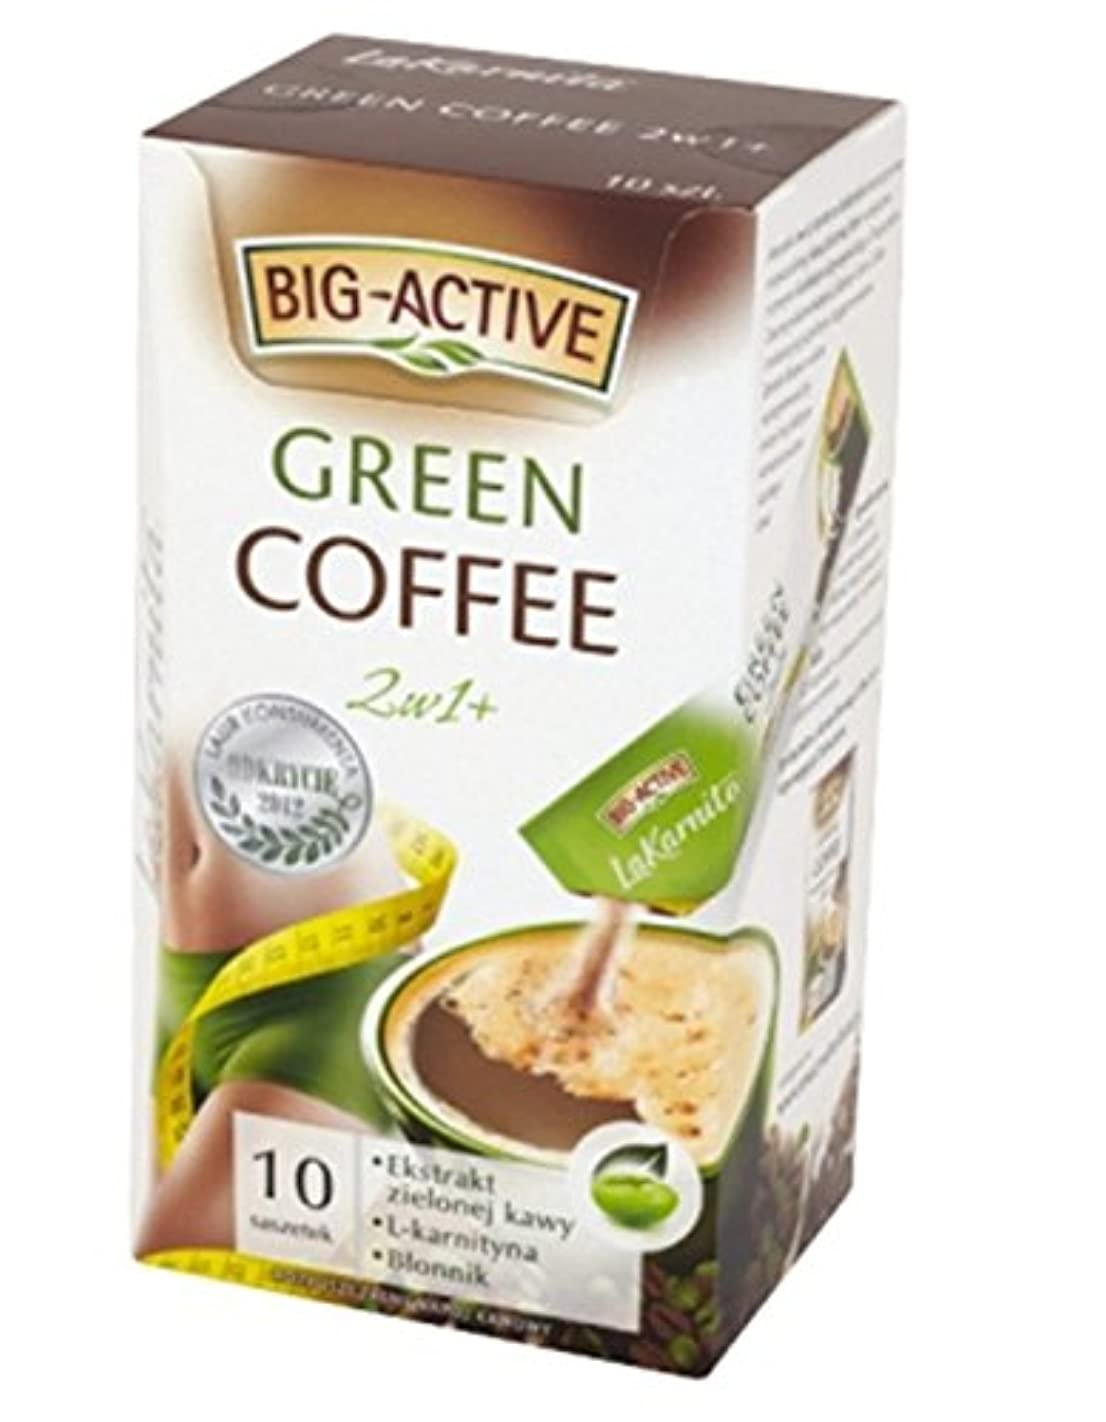 不安等々名前スリミン グリー グコーヒー/5 boxes Big Active La Karnita Green Coffee Slimming Sachet 2 IN 1